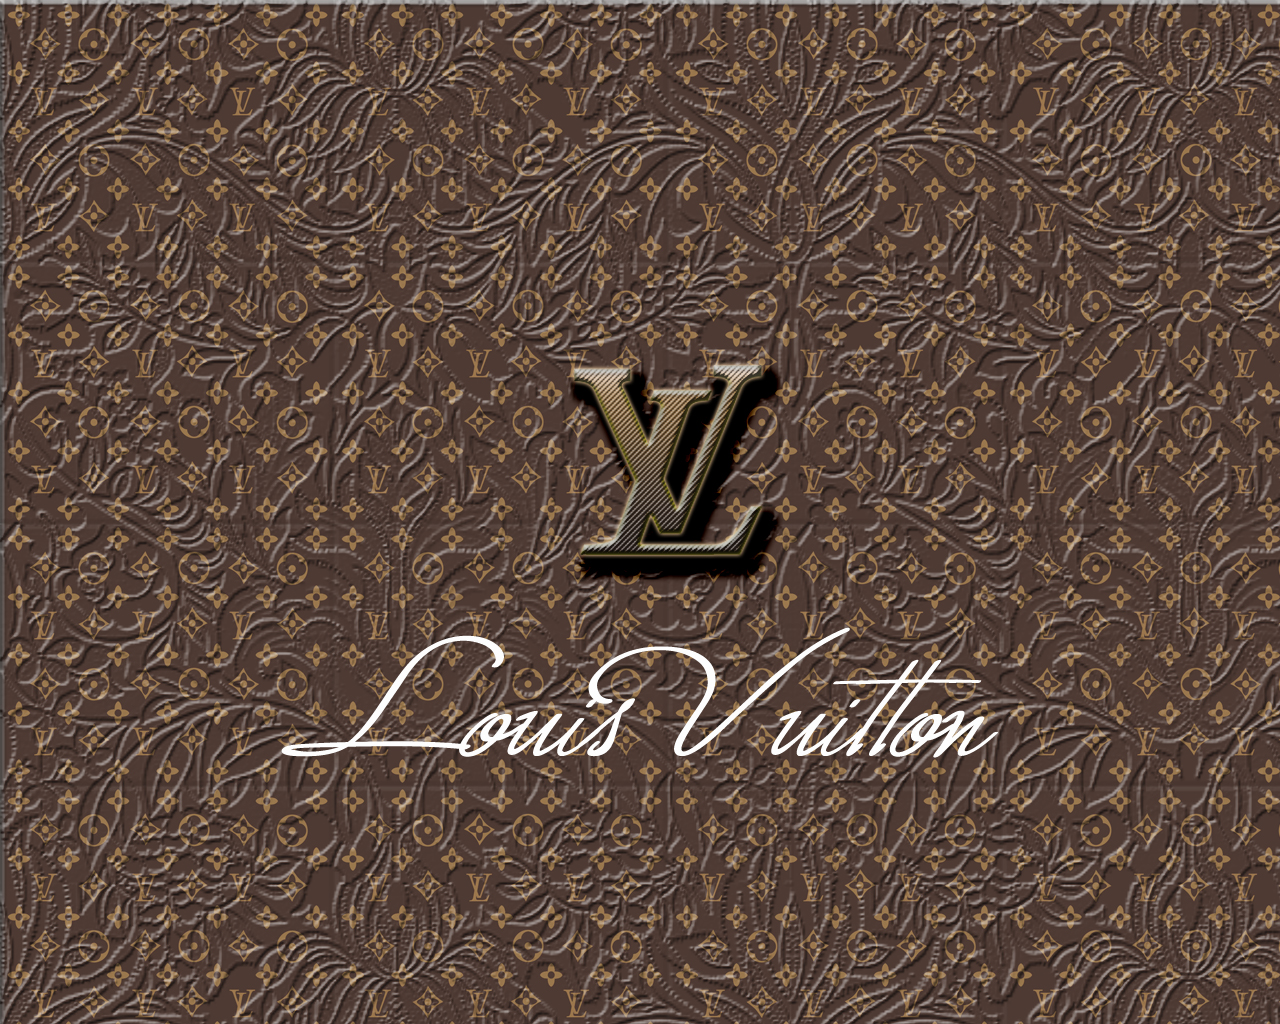 Louis Vuitton Wallpaper For Bedroom Louis Vuitton Bedroom Wallpaper Best Bedroom Ideas 2017